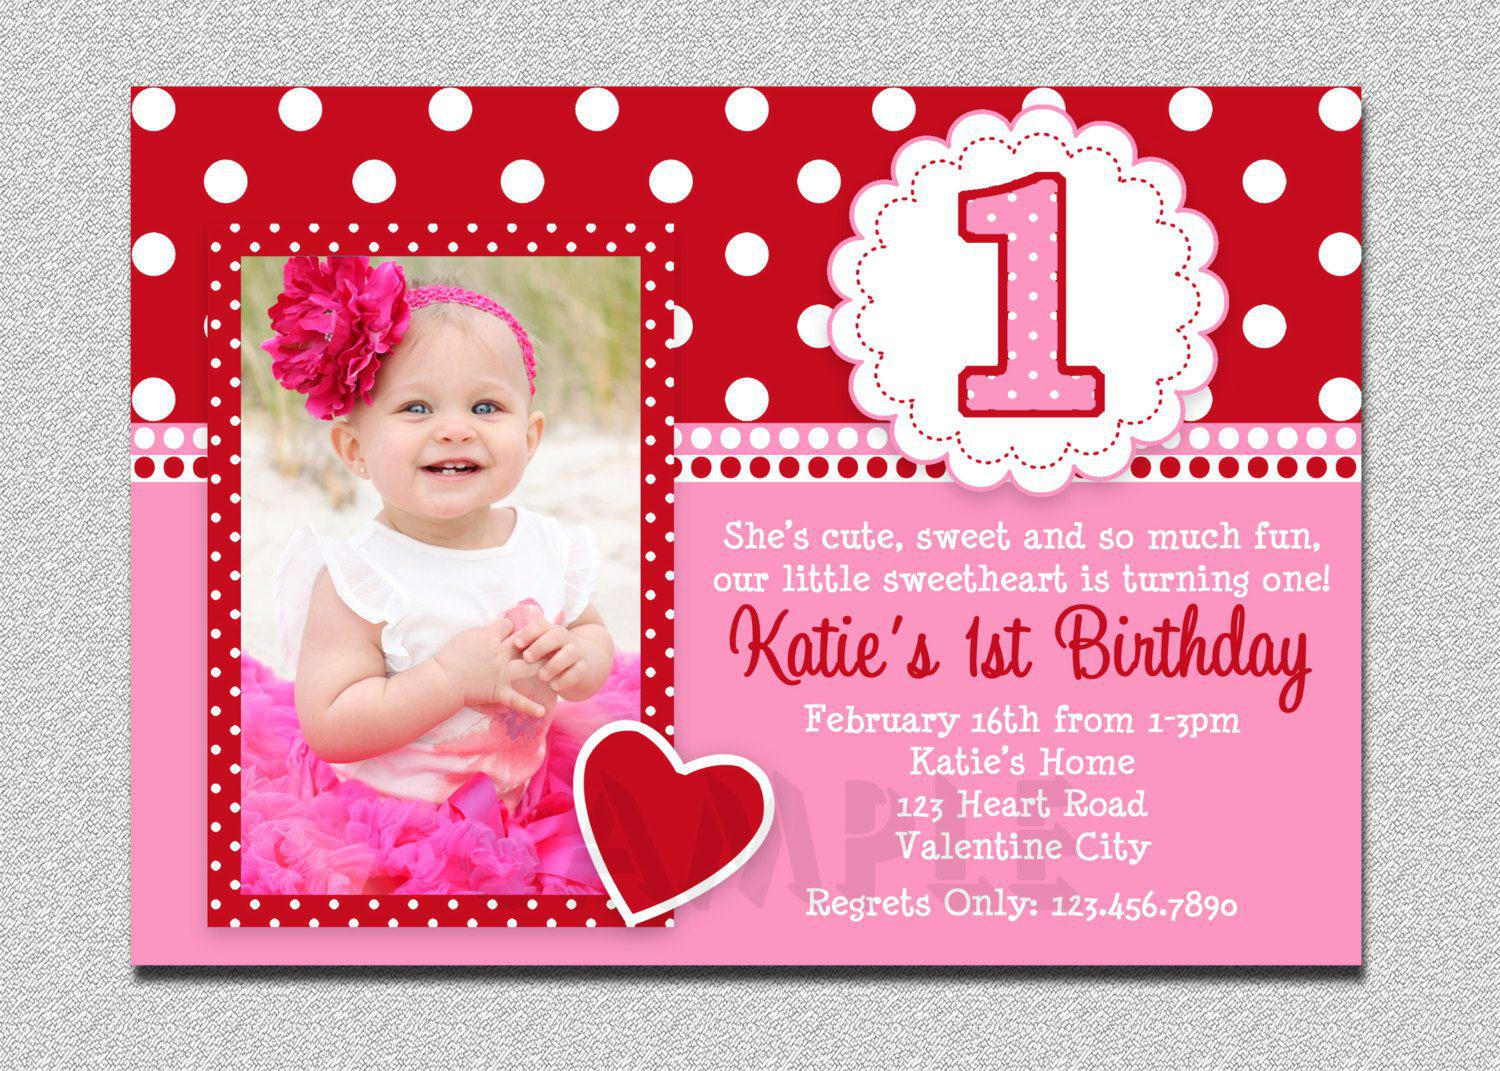 Best First Birthday Invites Printable Sample Templates - Baby girl first birthday invitation ideas